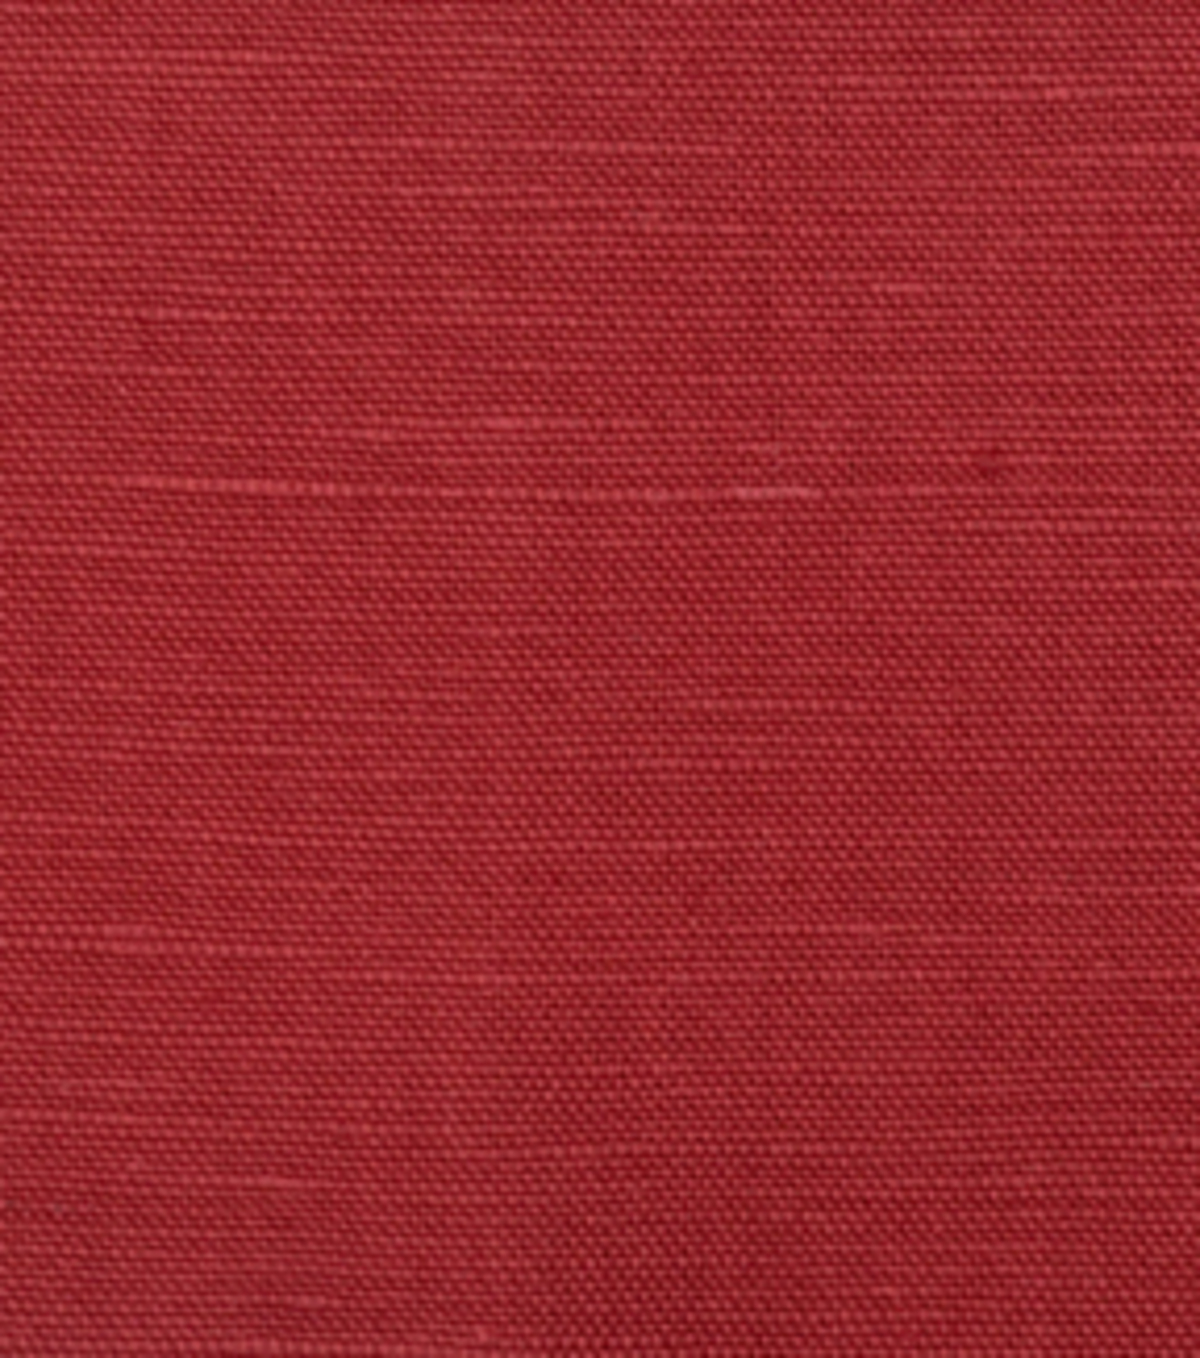 Home Decor 8\u0022x8\u0022 Fabric Swatch-Signature Series Linen-Cotton Scarlet